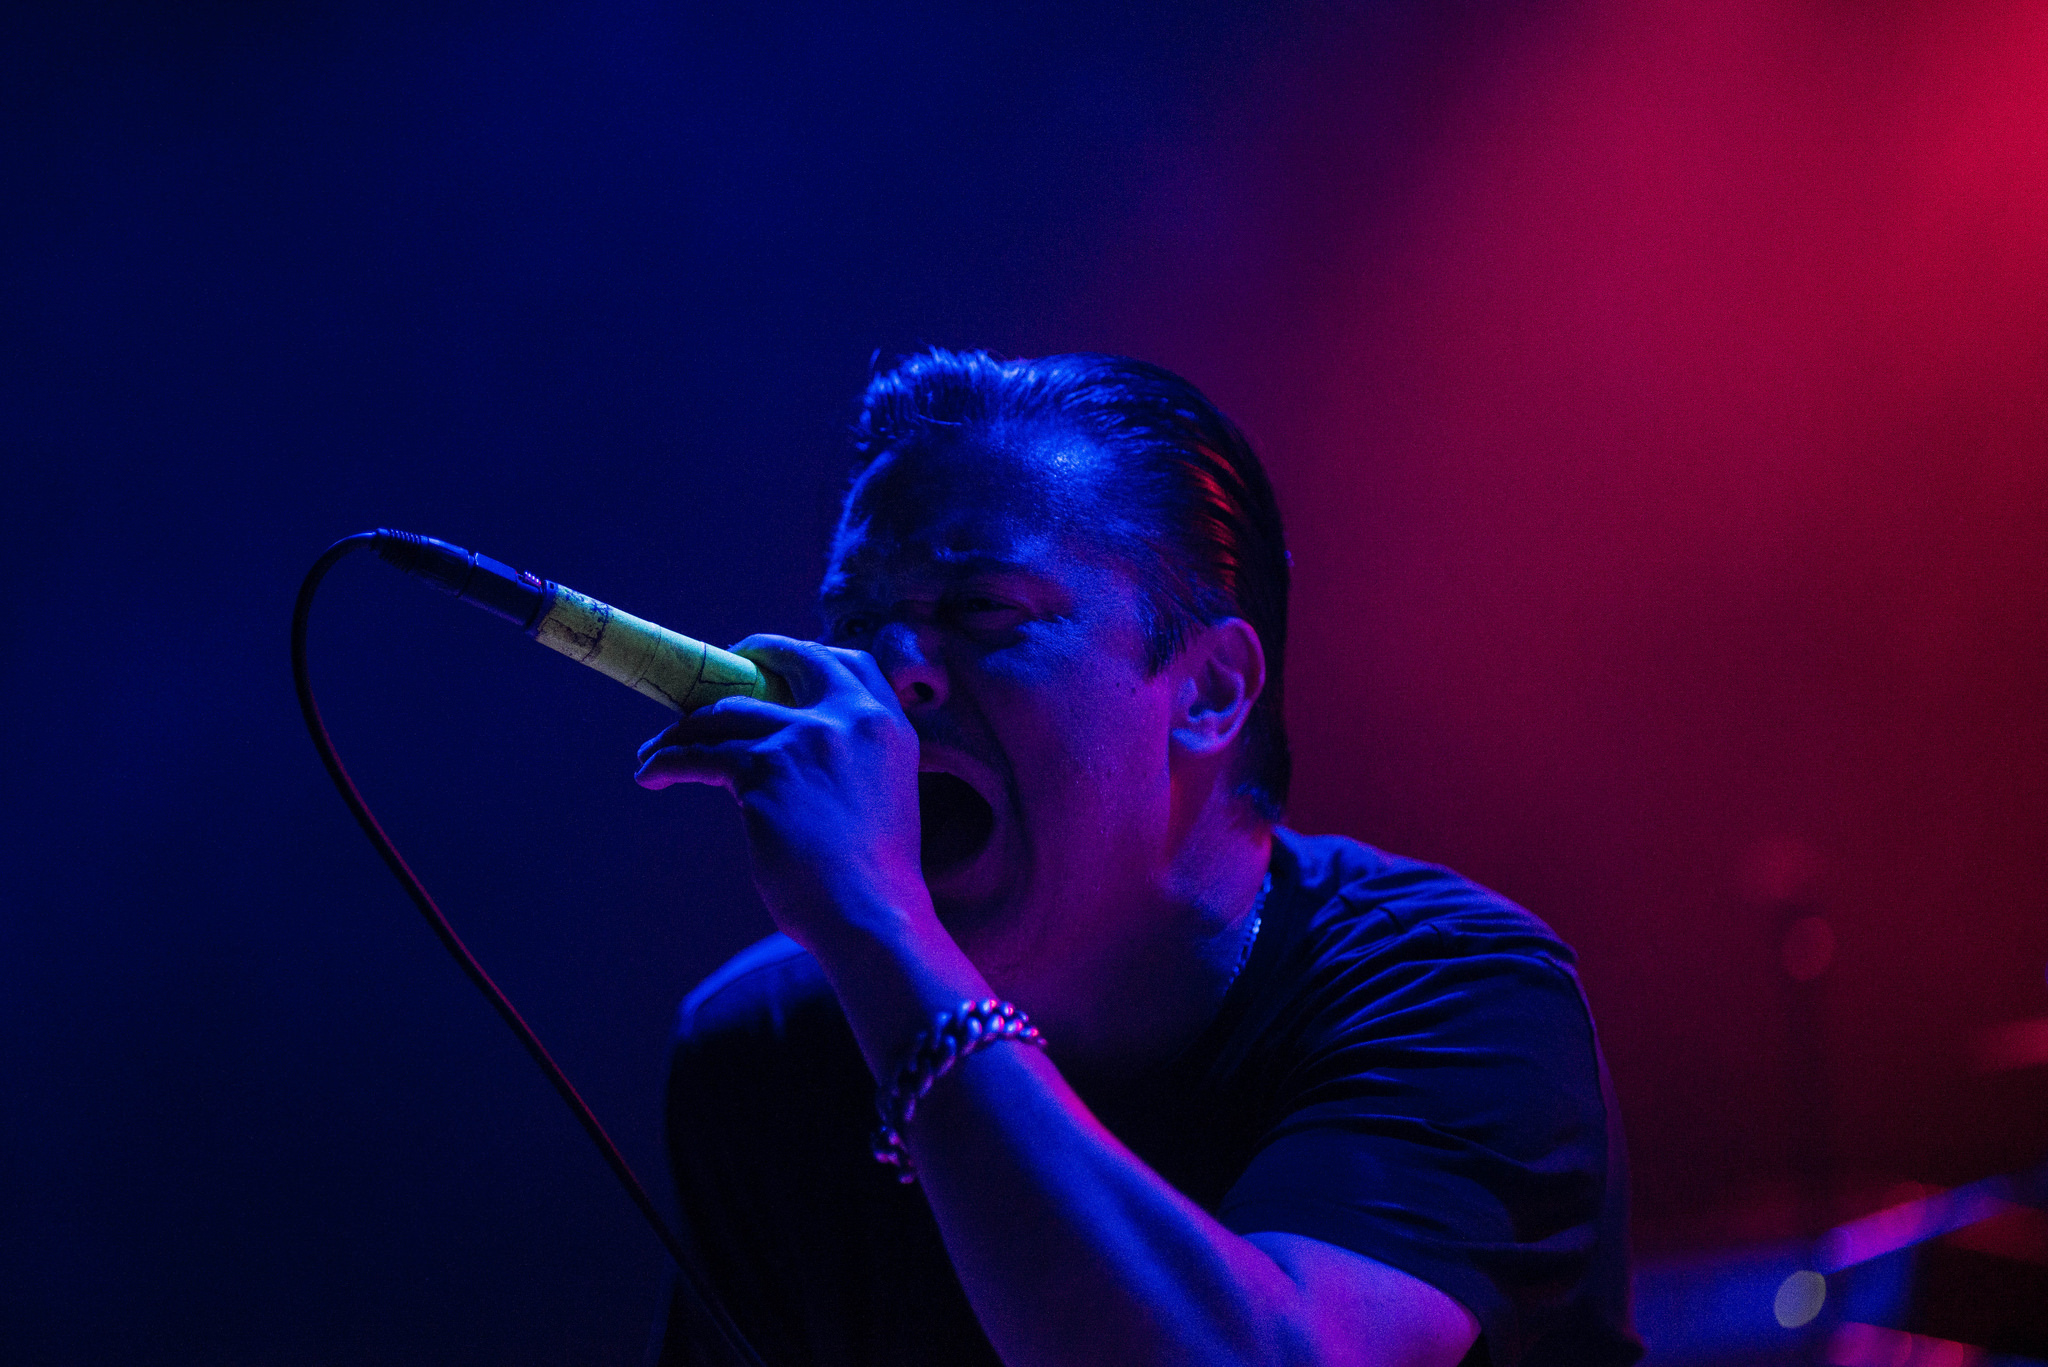 Dead Cross at Warsaw (September 2017)